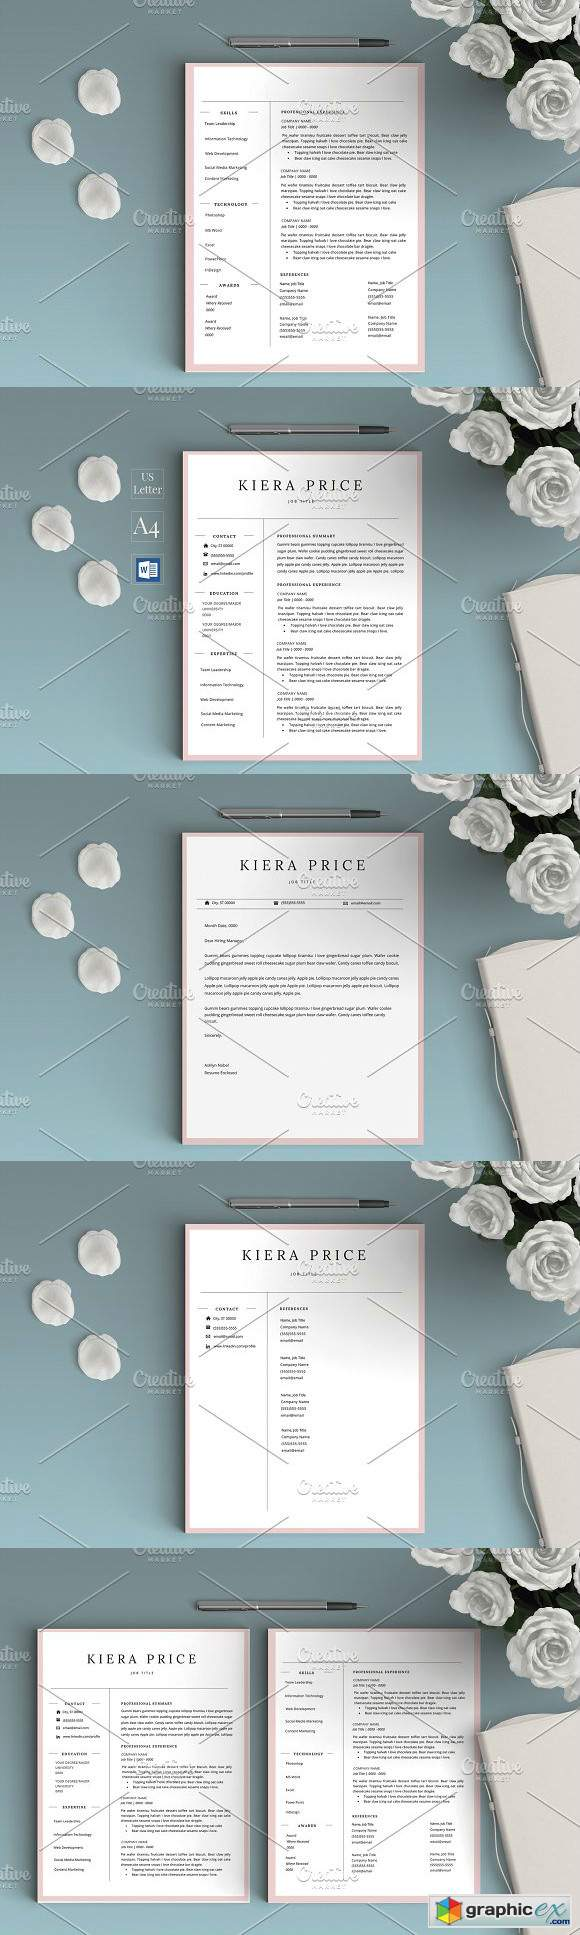 Word CV Resume - Kiera